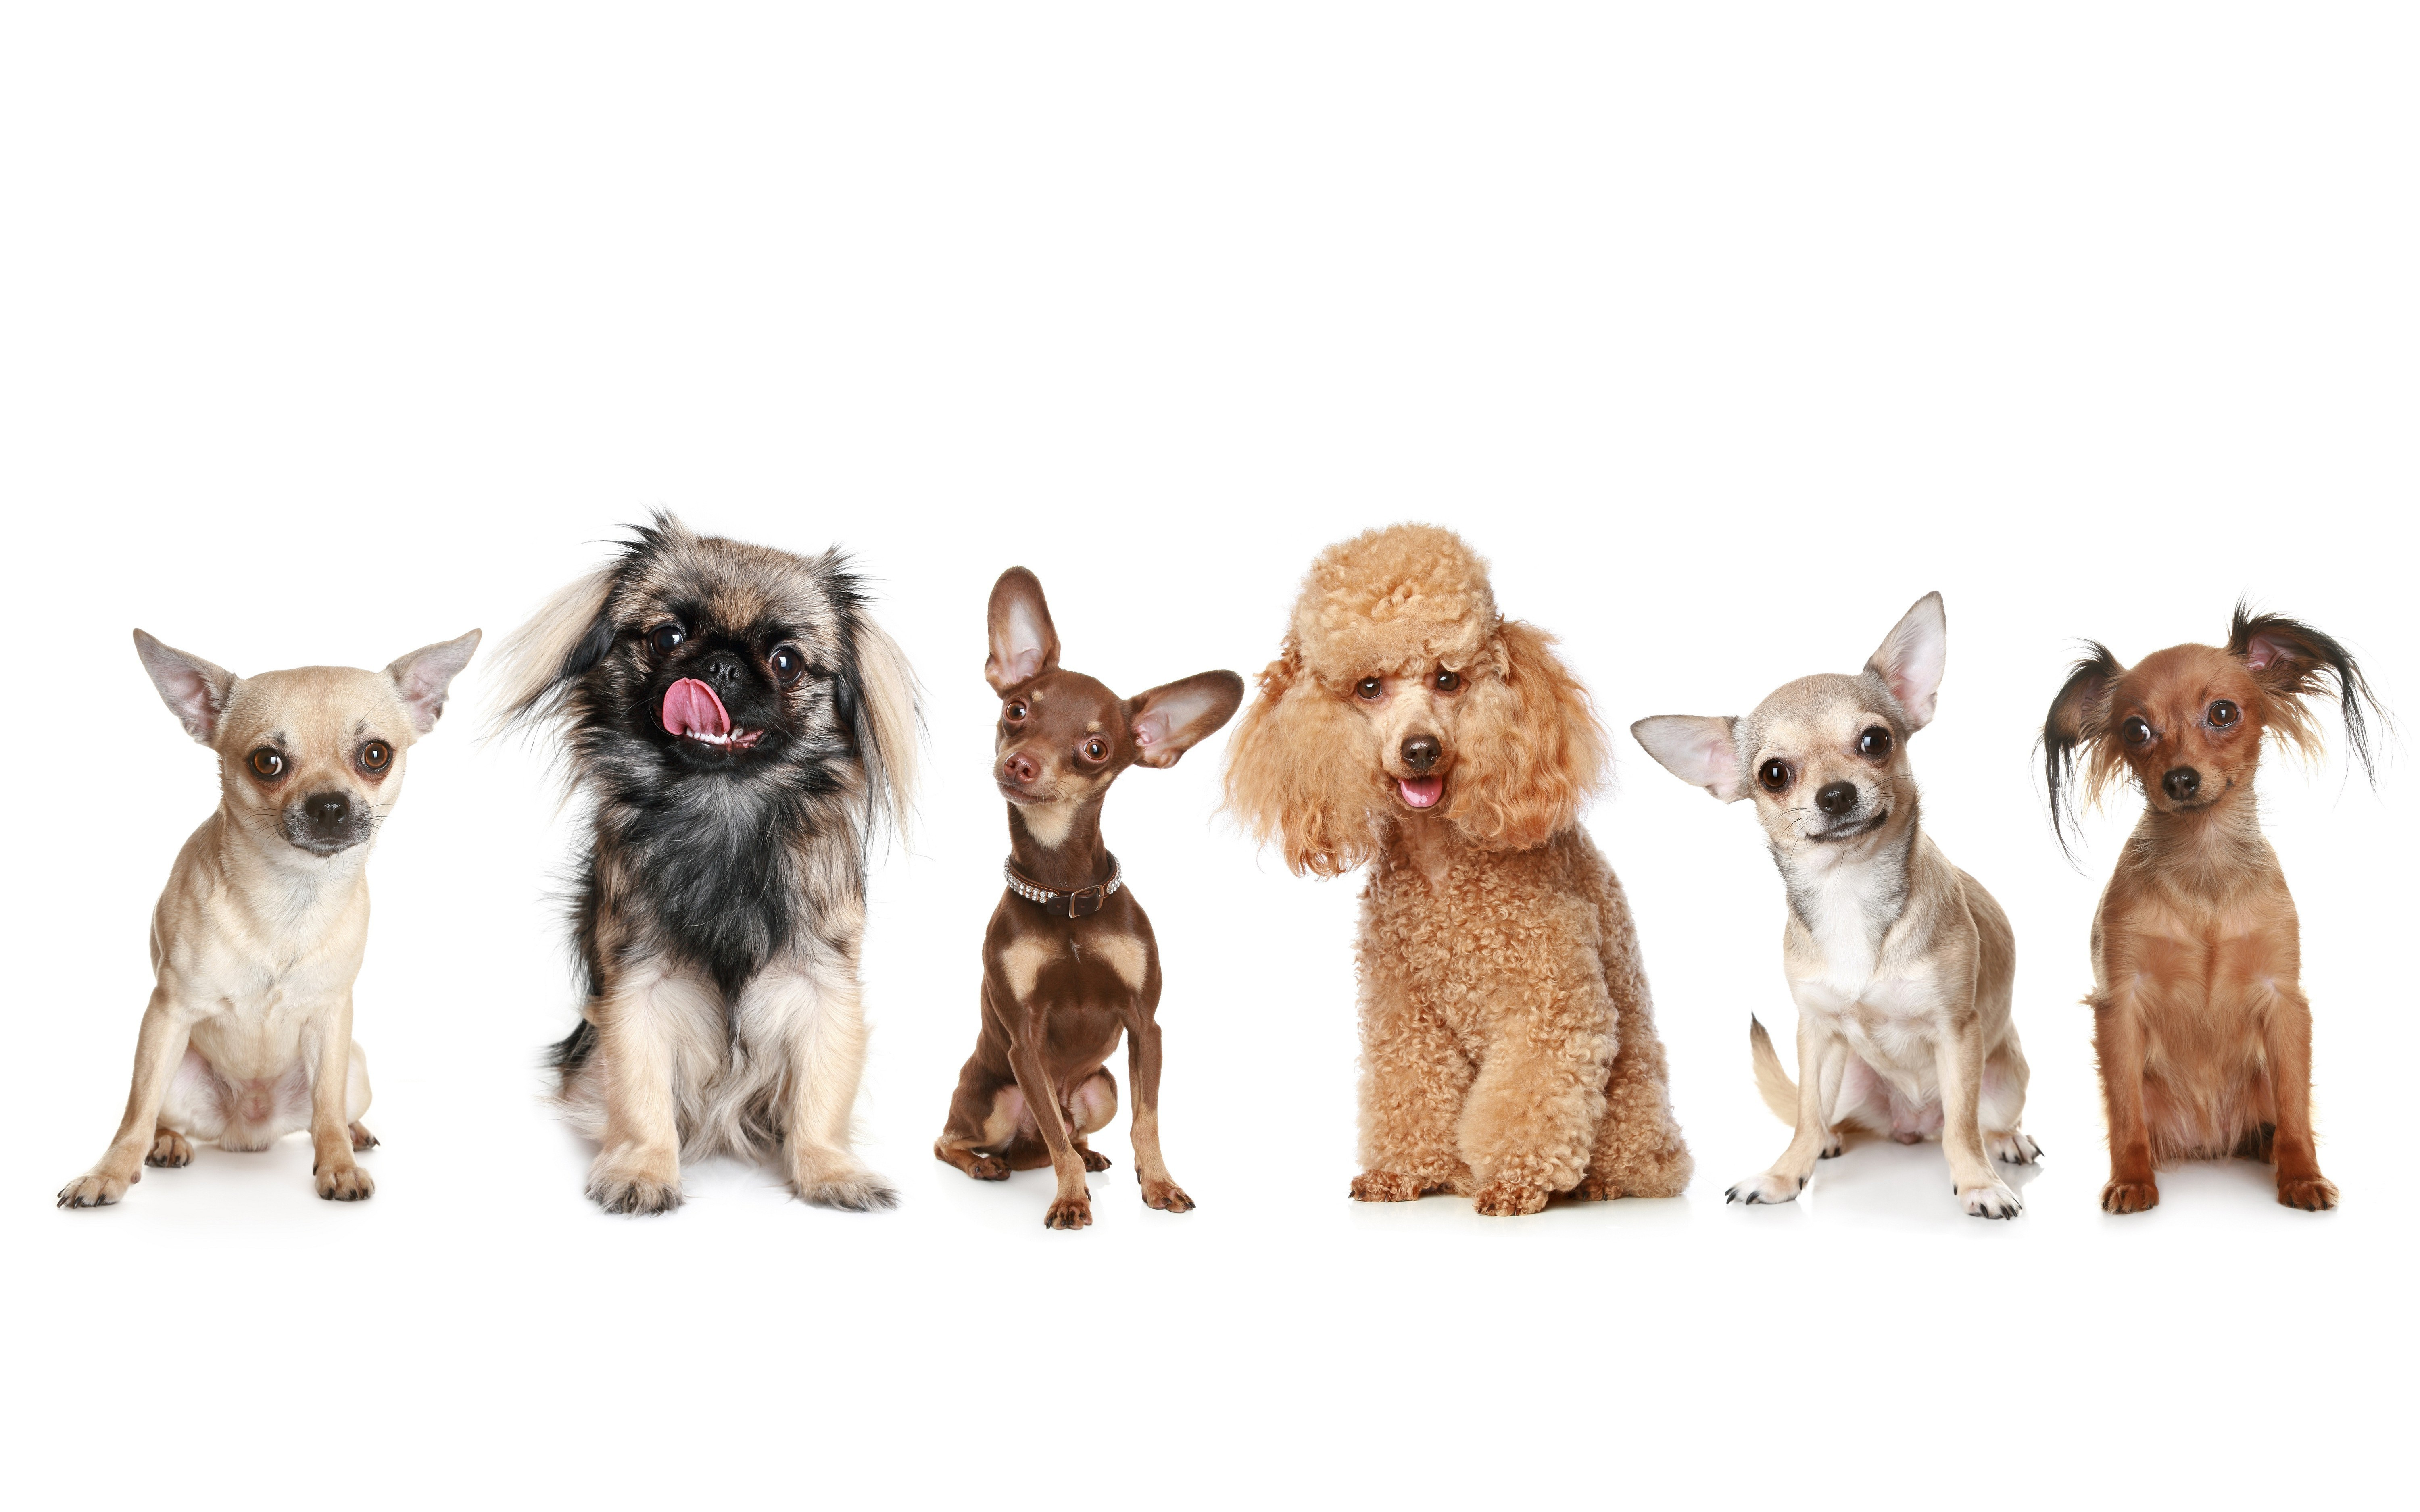 dogs 5k retina ultra hd wallpaper and background | 6000x3750 | id